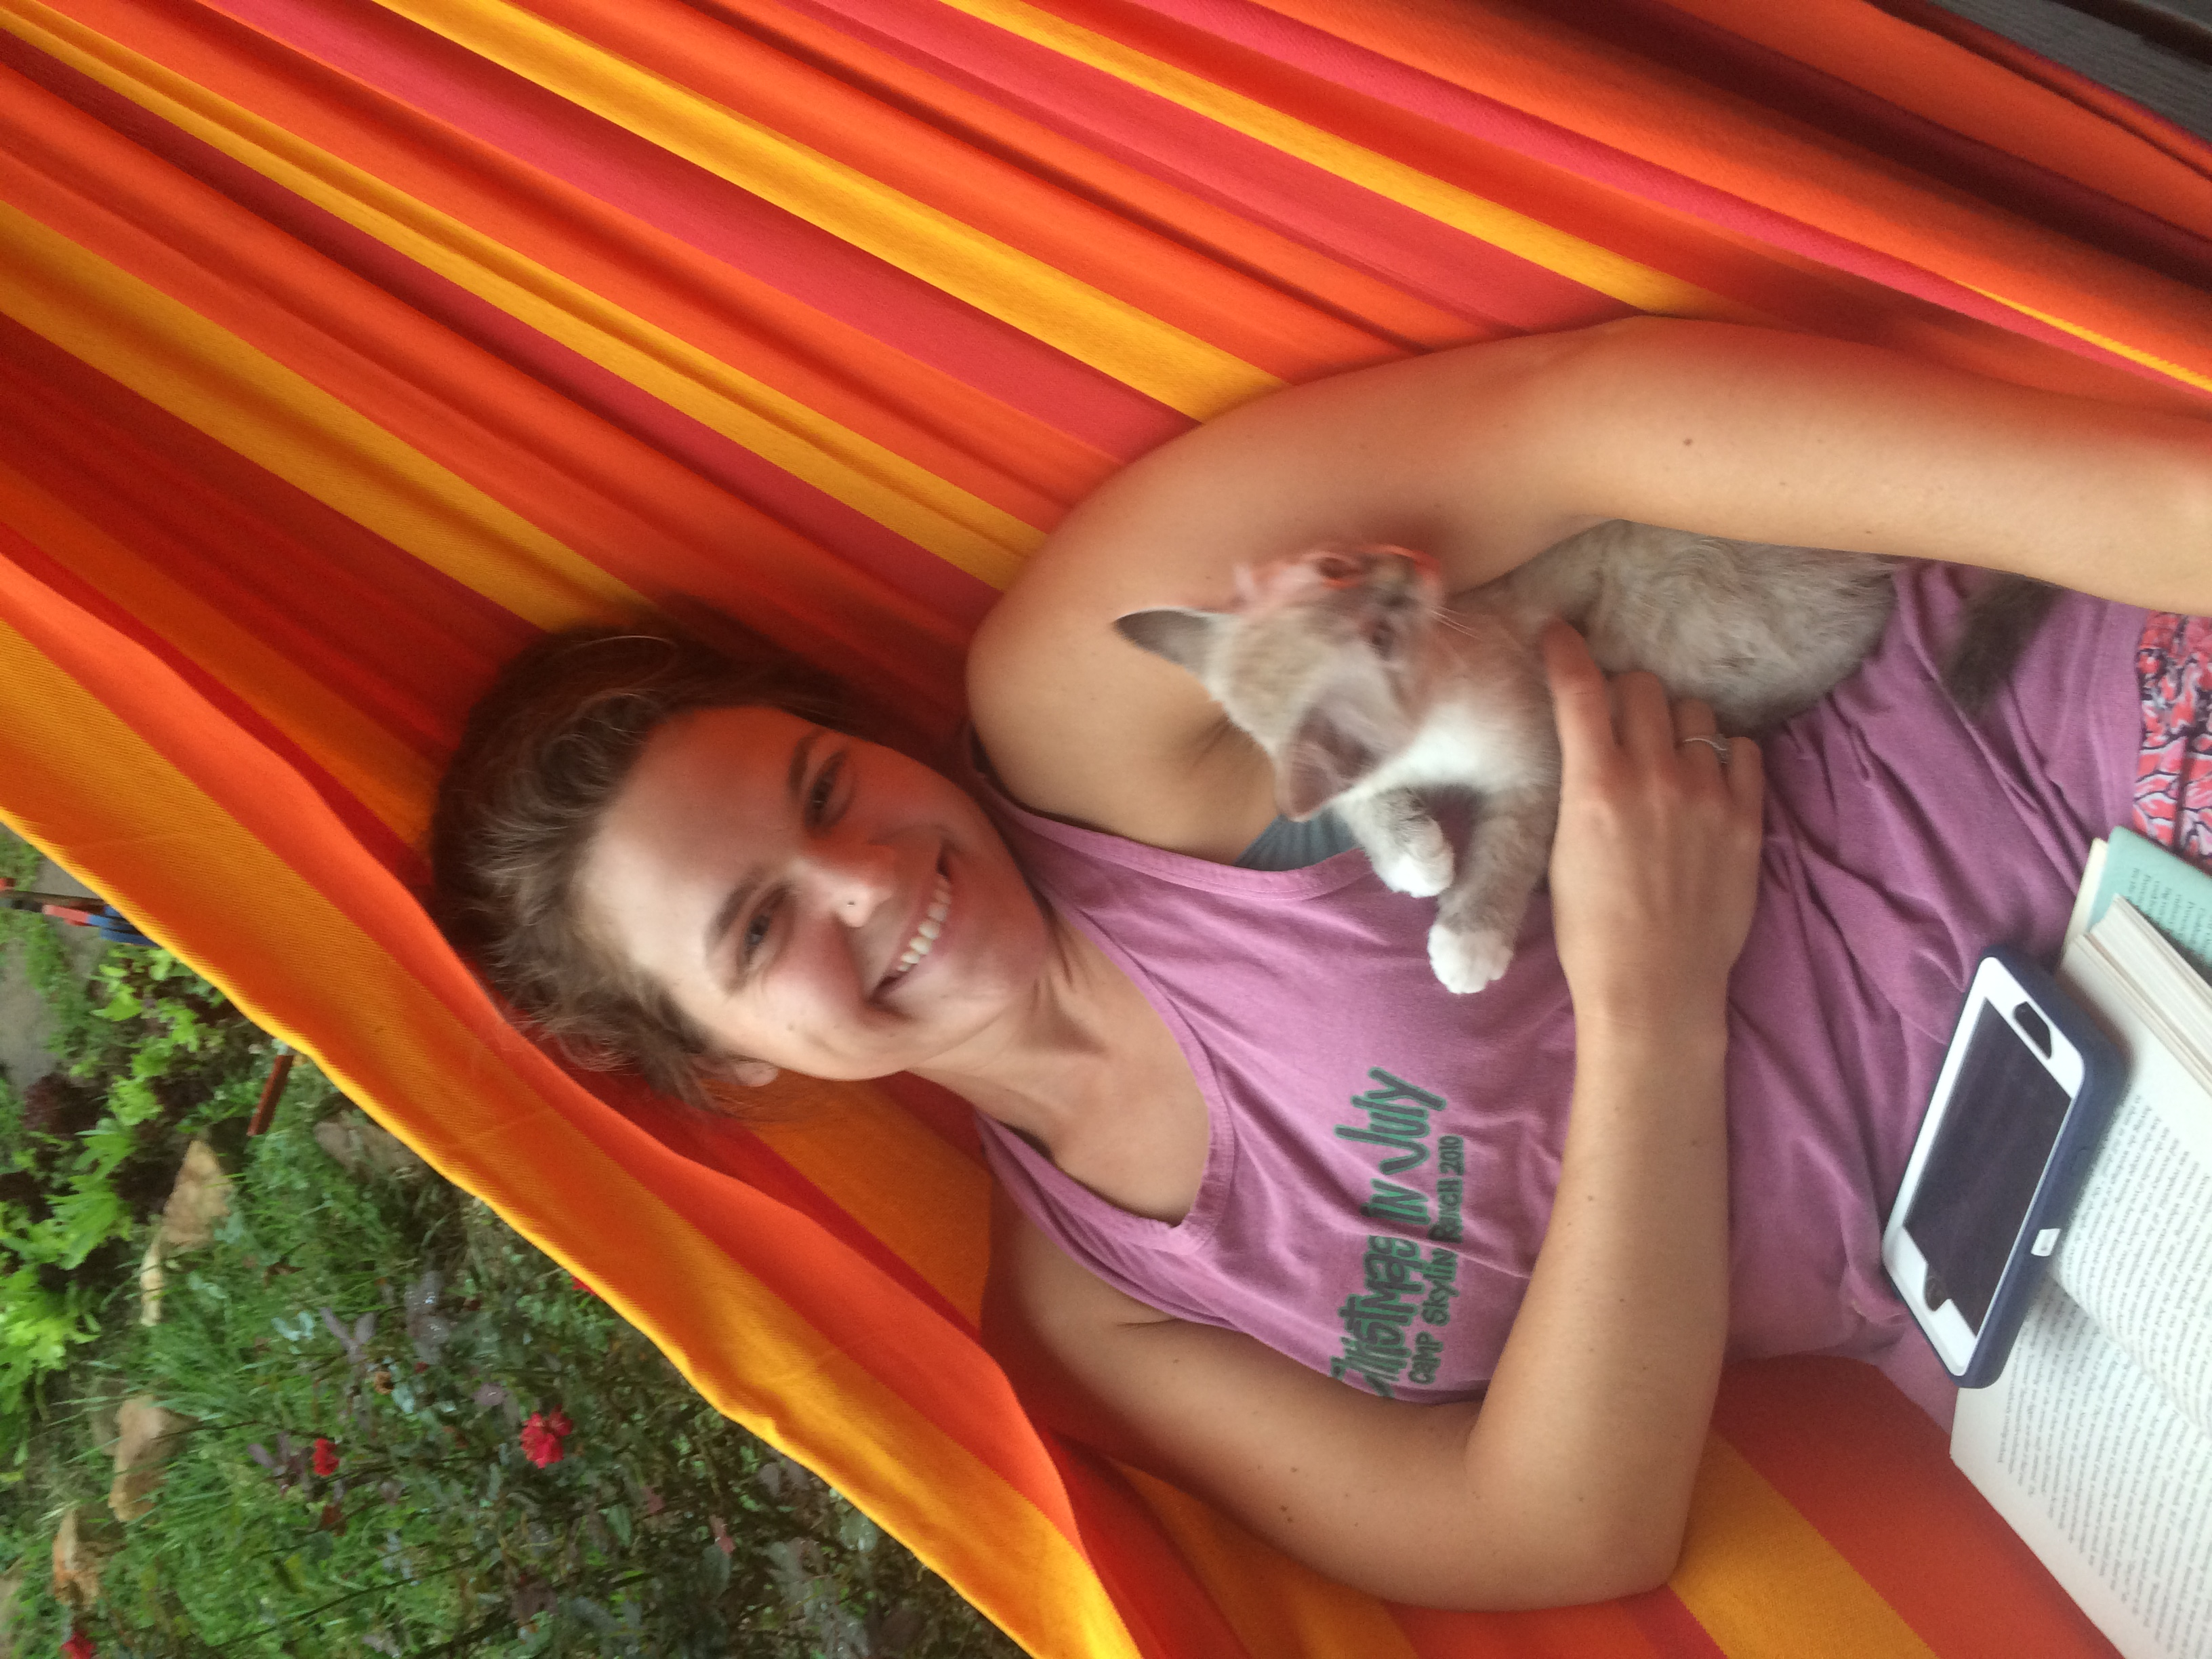 Sarah and her new BFF the kitty